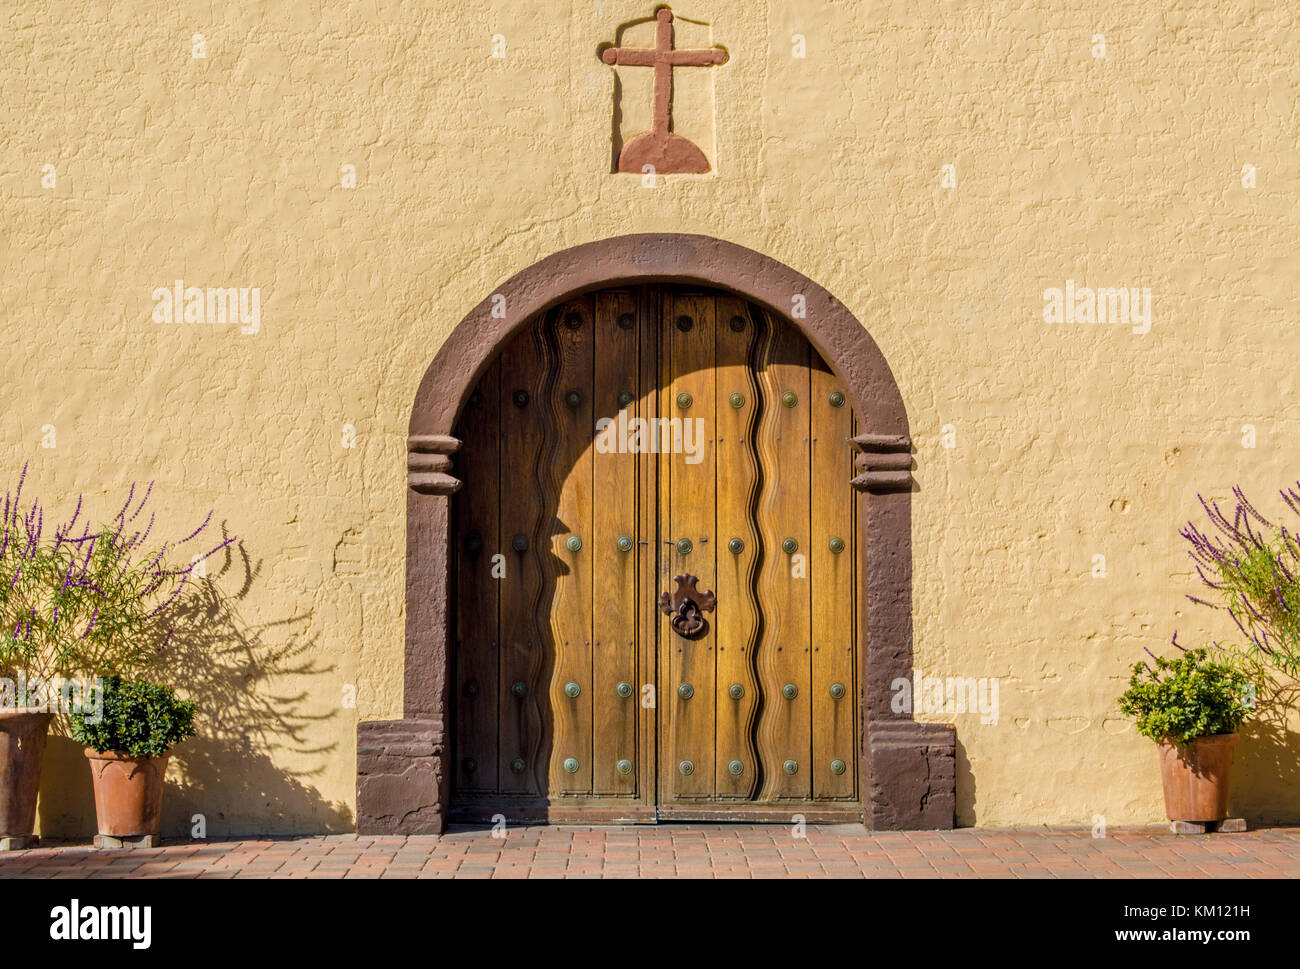 arched wooden door with a cross above it at the entrance to an adobe  church in early morning sunlight with shadow - Stock Image